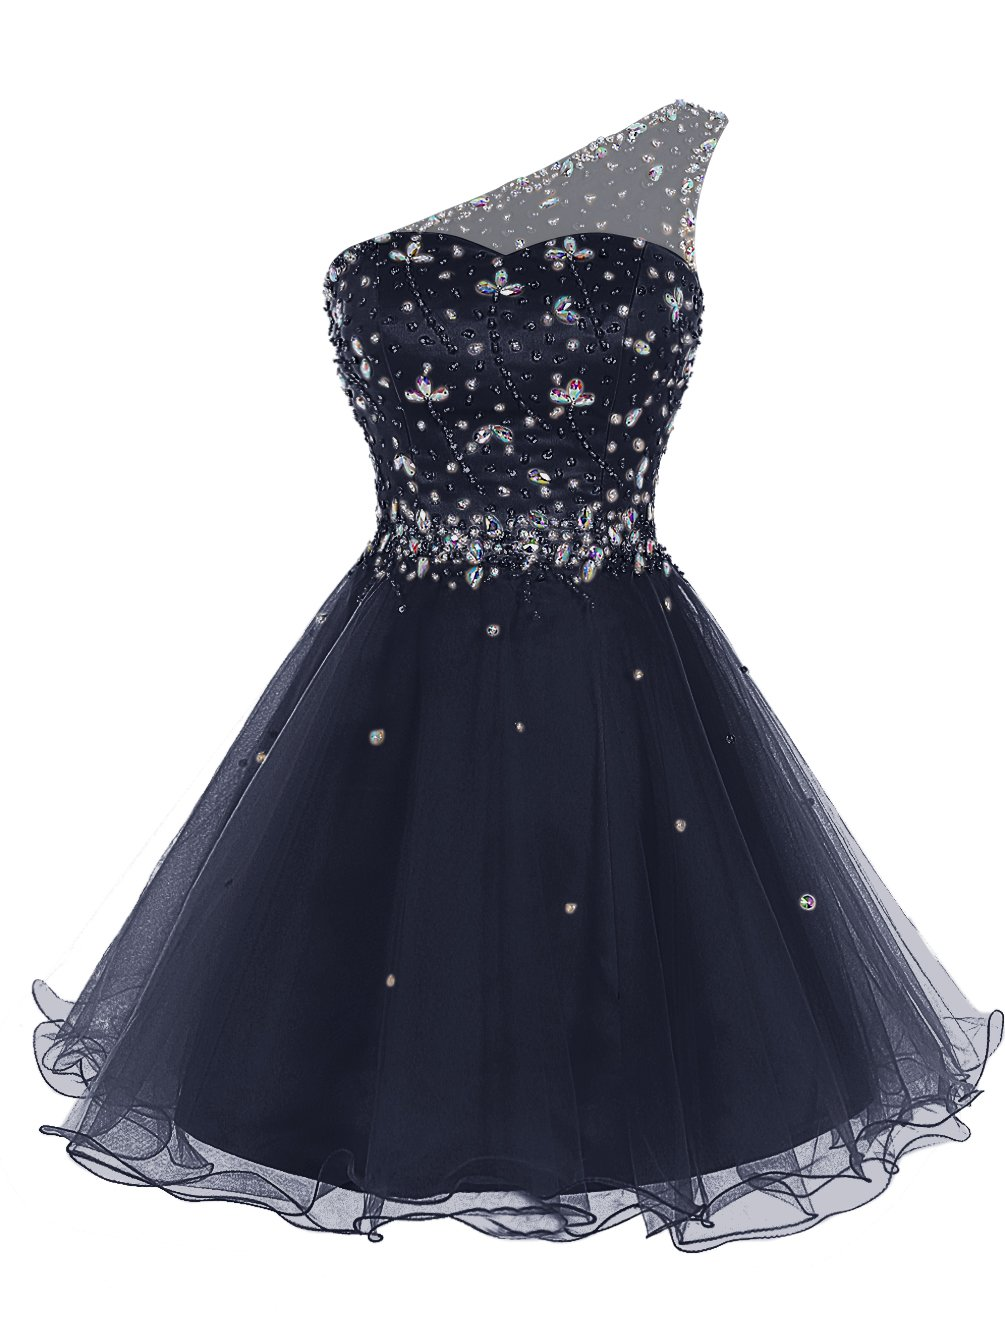 a07fed12213 Bbonlinedress Women s Short Tulle Homecoming Dress One-Shoulder Beaded  Cocktail Prom Party Dress Dark Navy 12